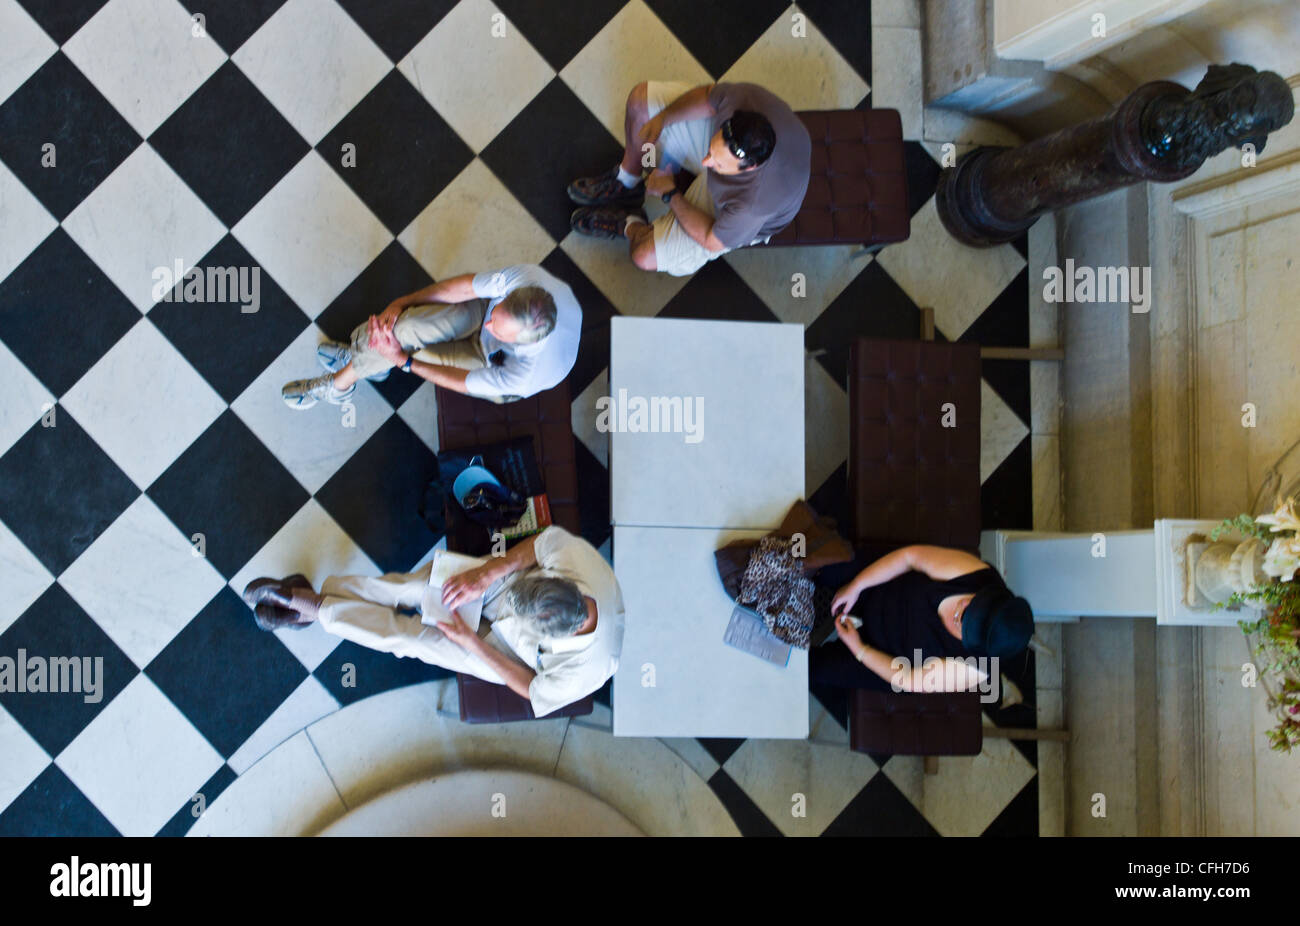 France, Paris, 7th arrondissement, indoors of the Rodin museum - Stock Image